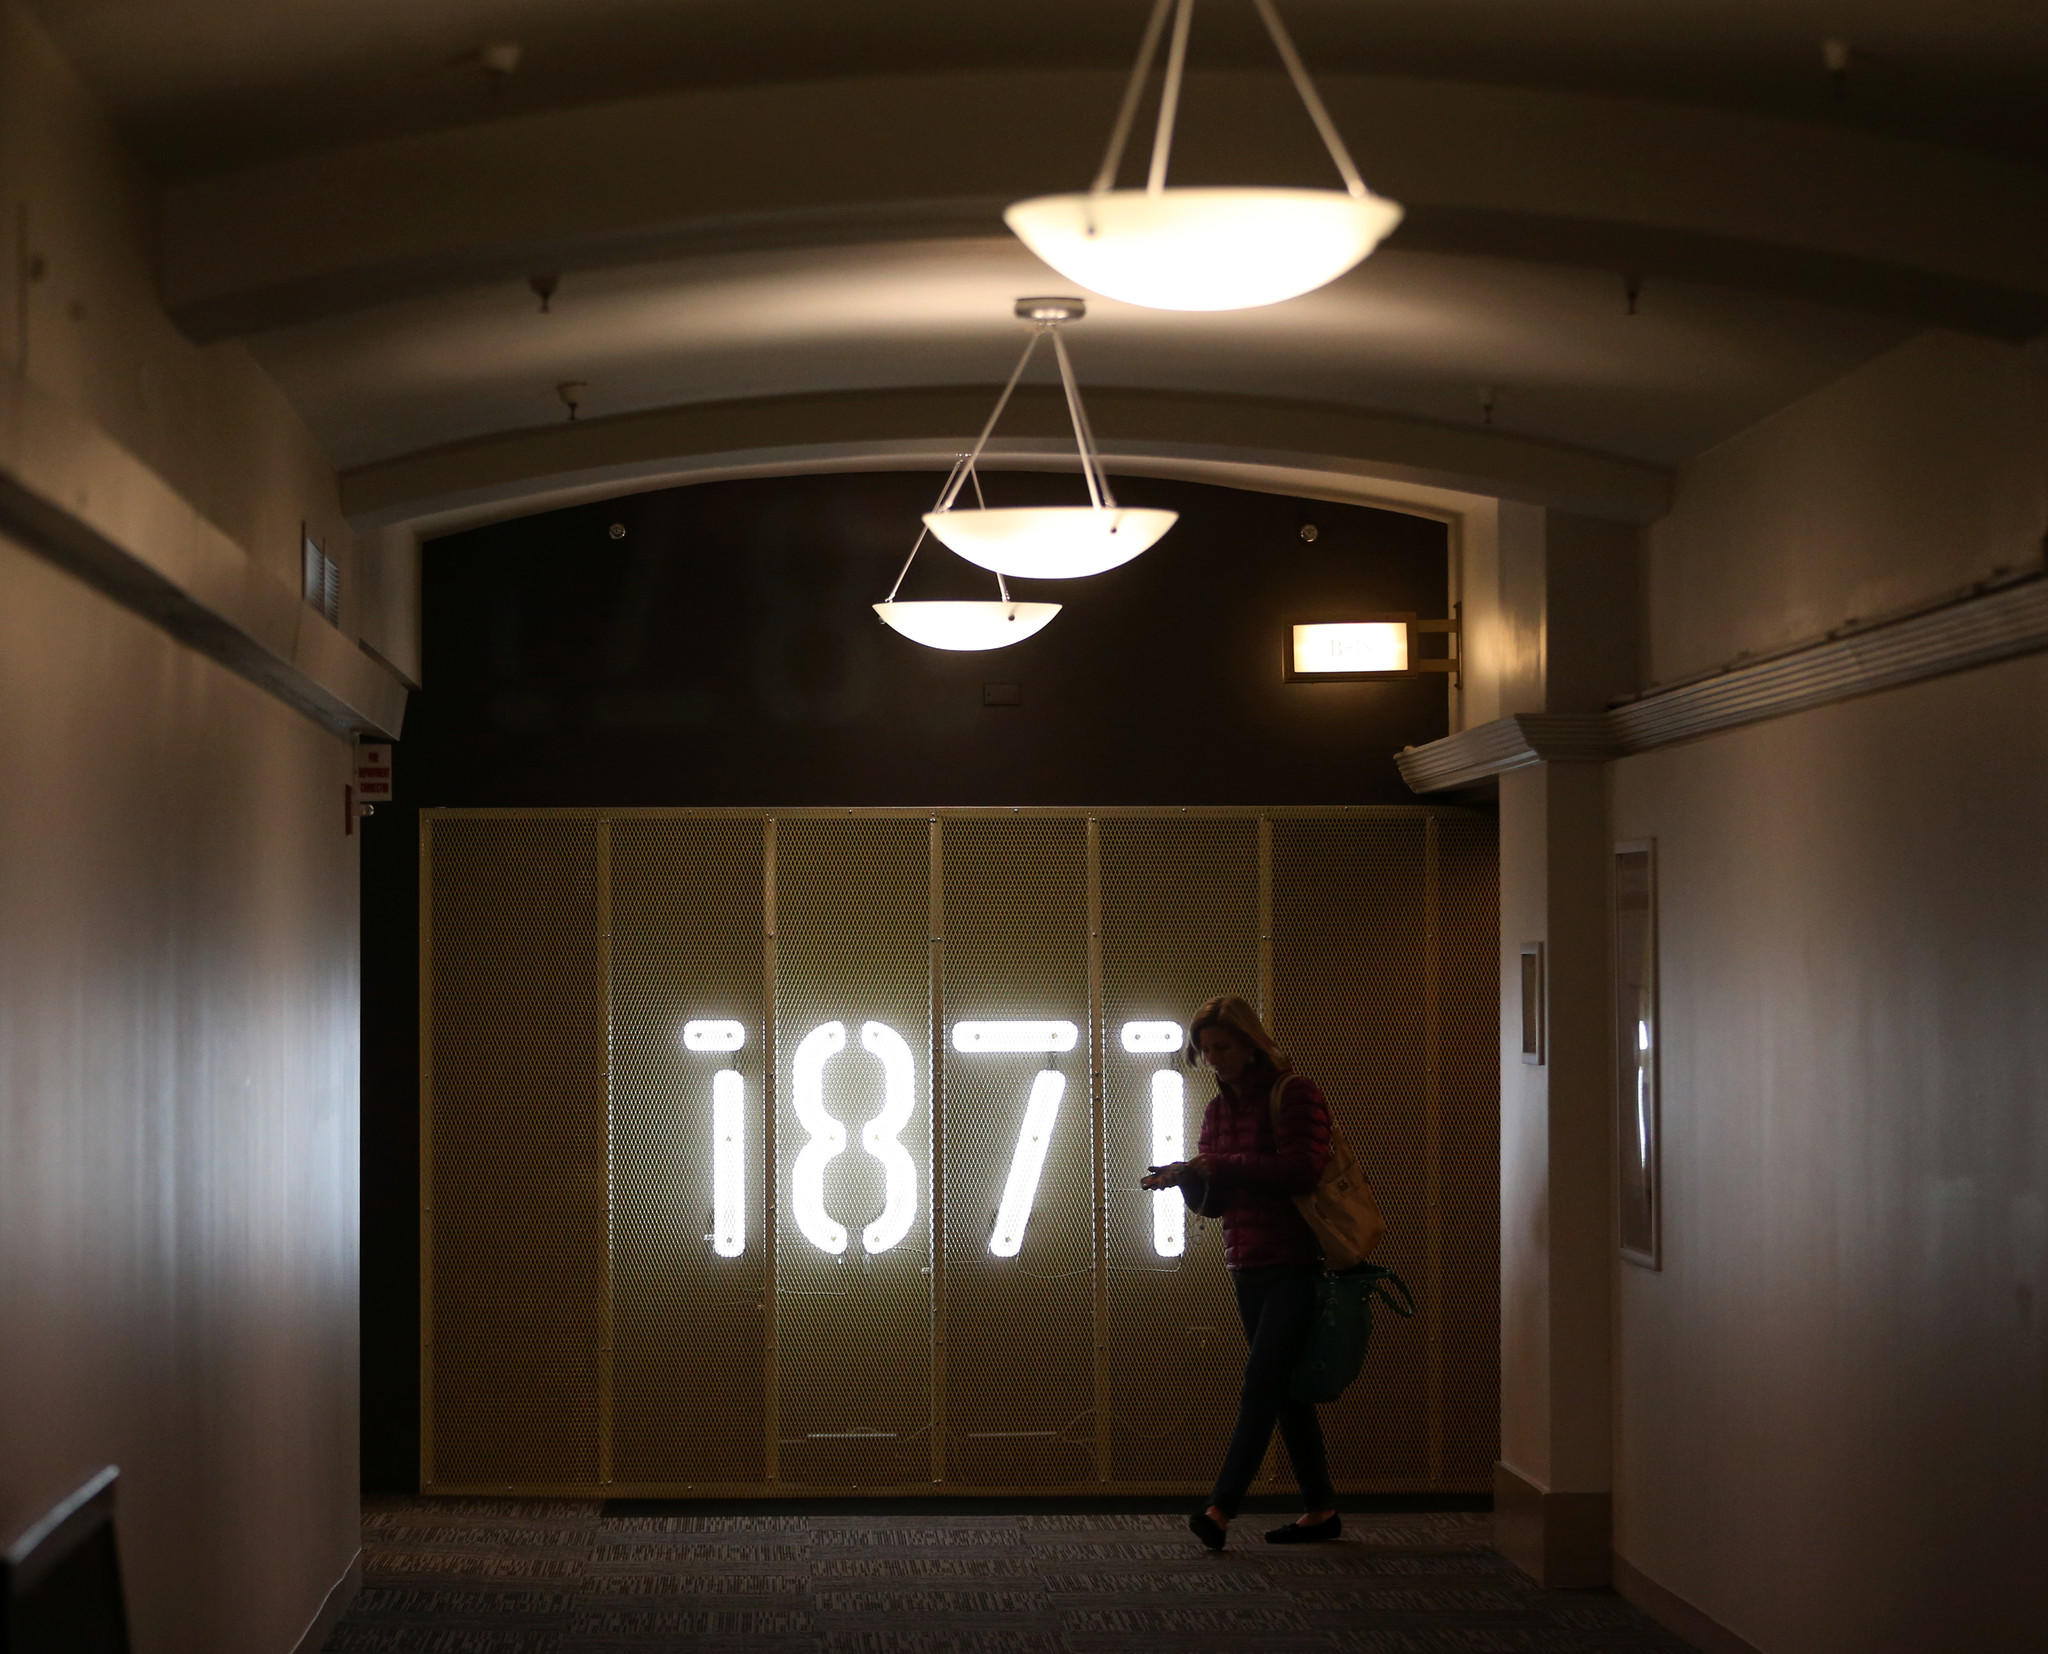 Entrance to 1871 inside Chicago's Merchandise Mart.